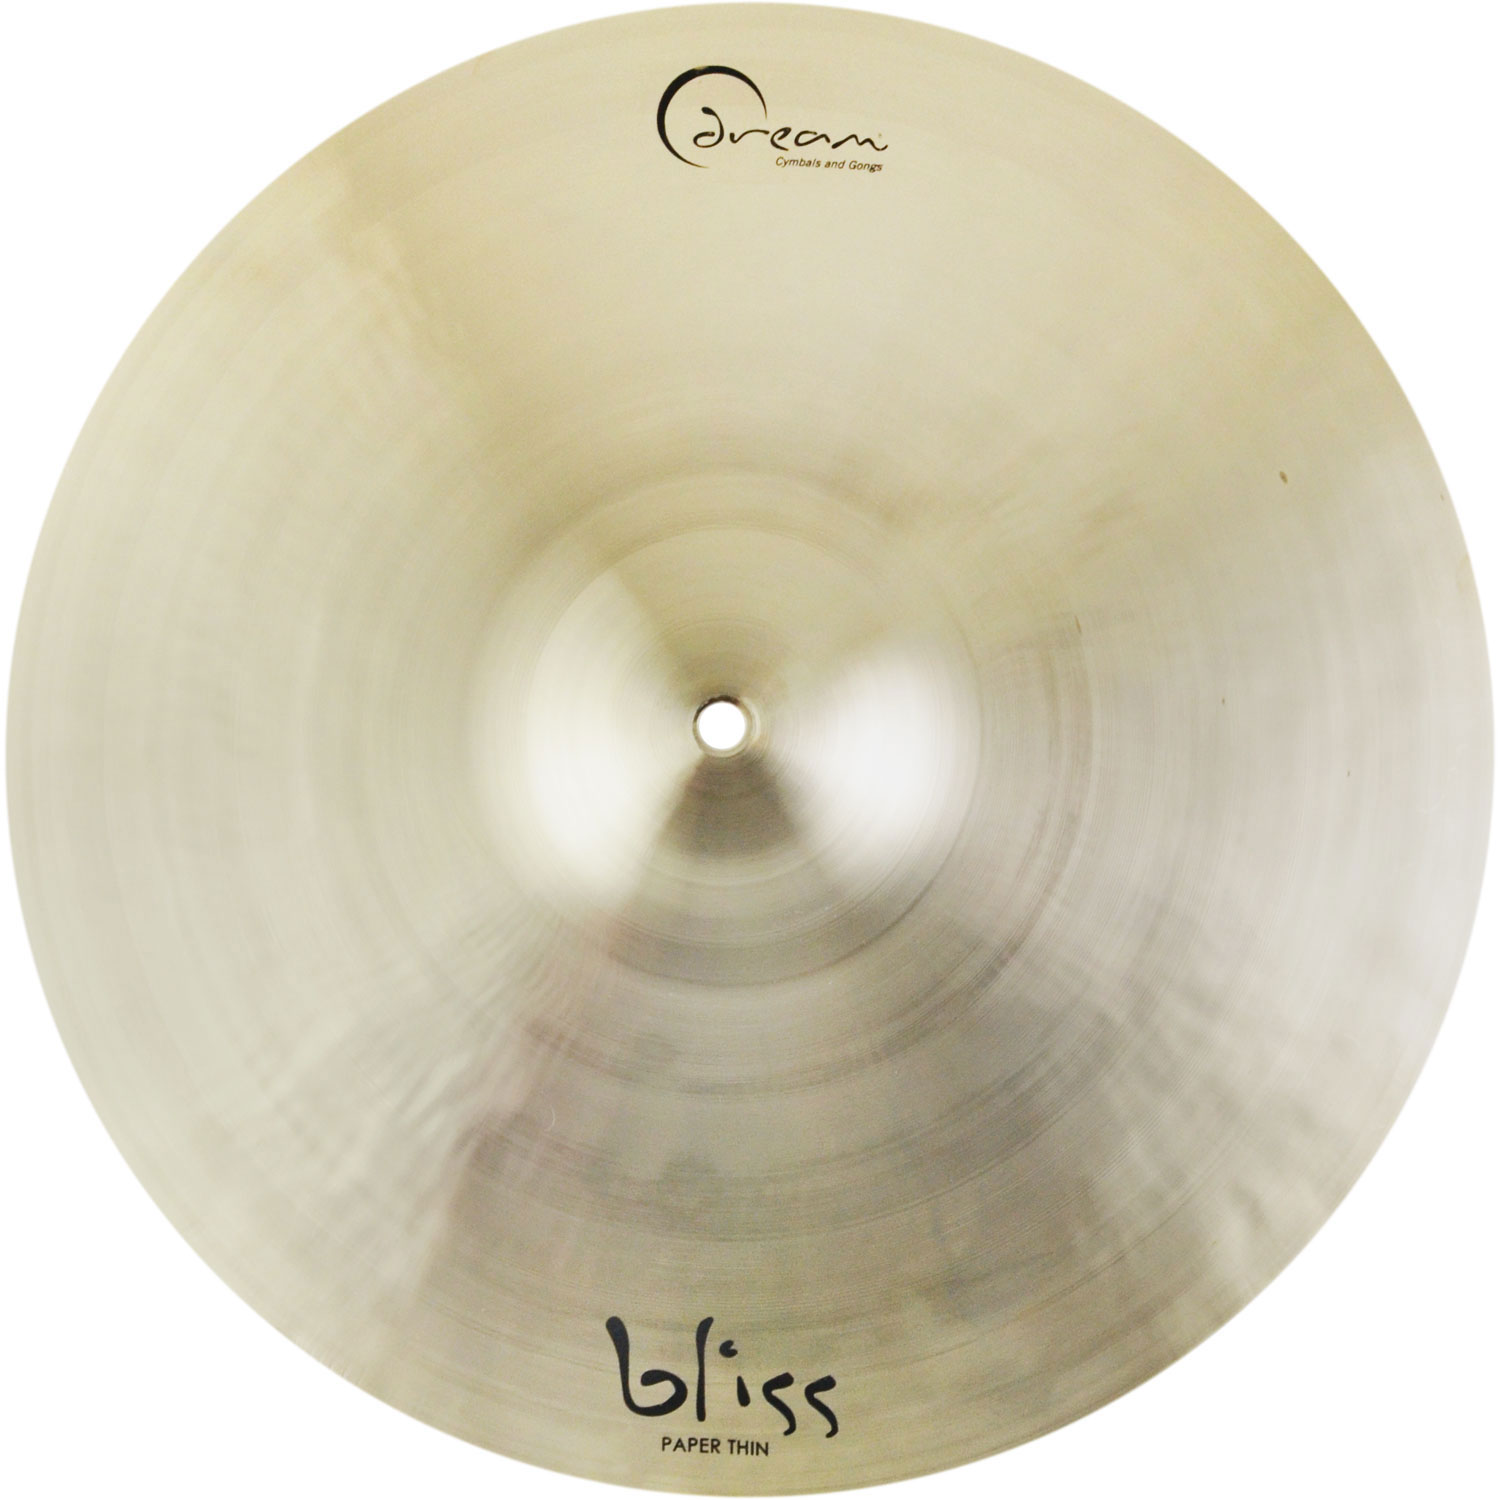 "Dream 14"" Bliss Paper Thin Crash Cymbal"